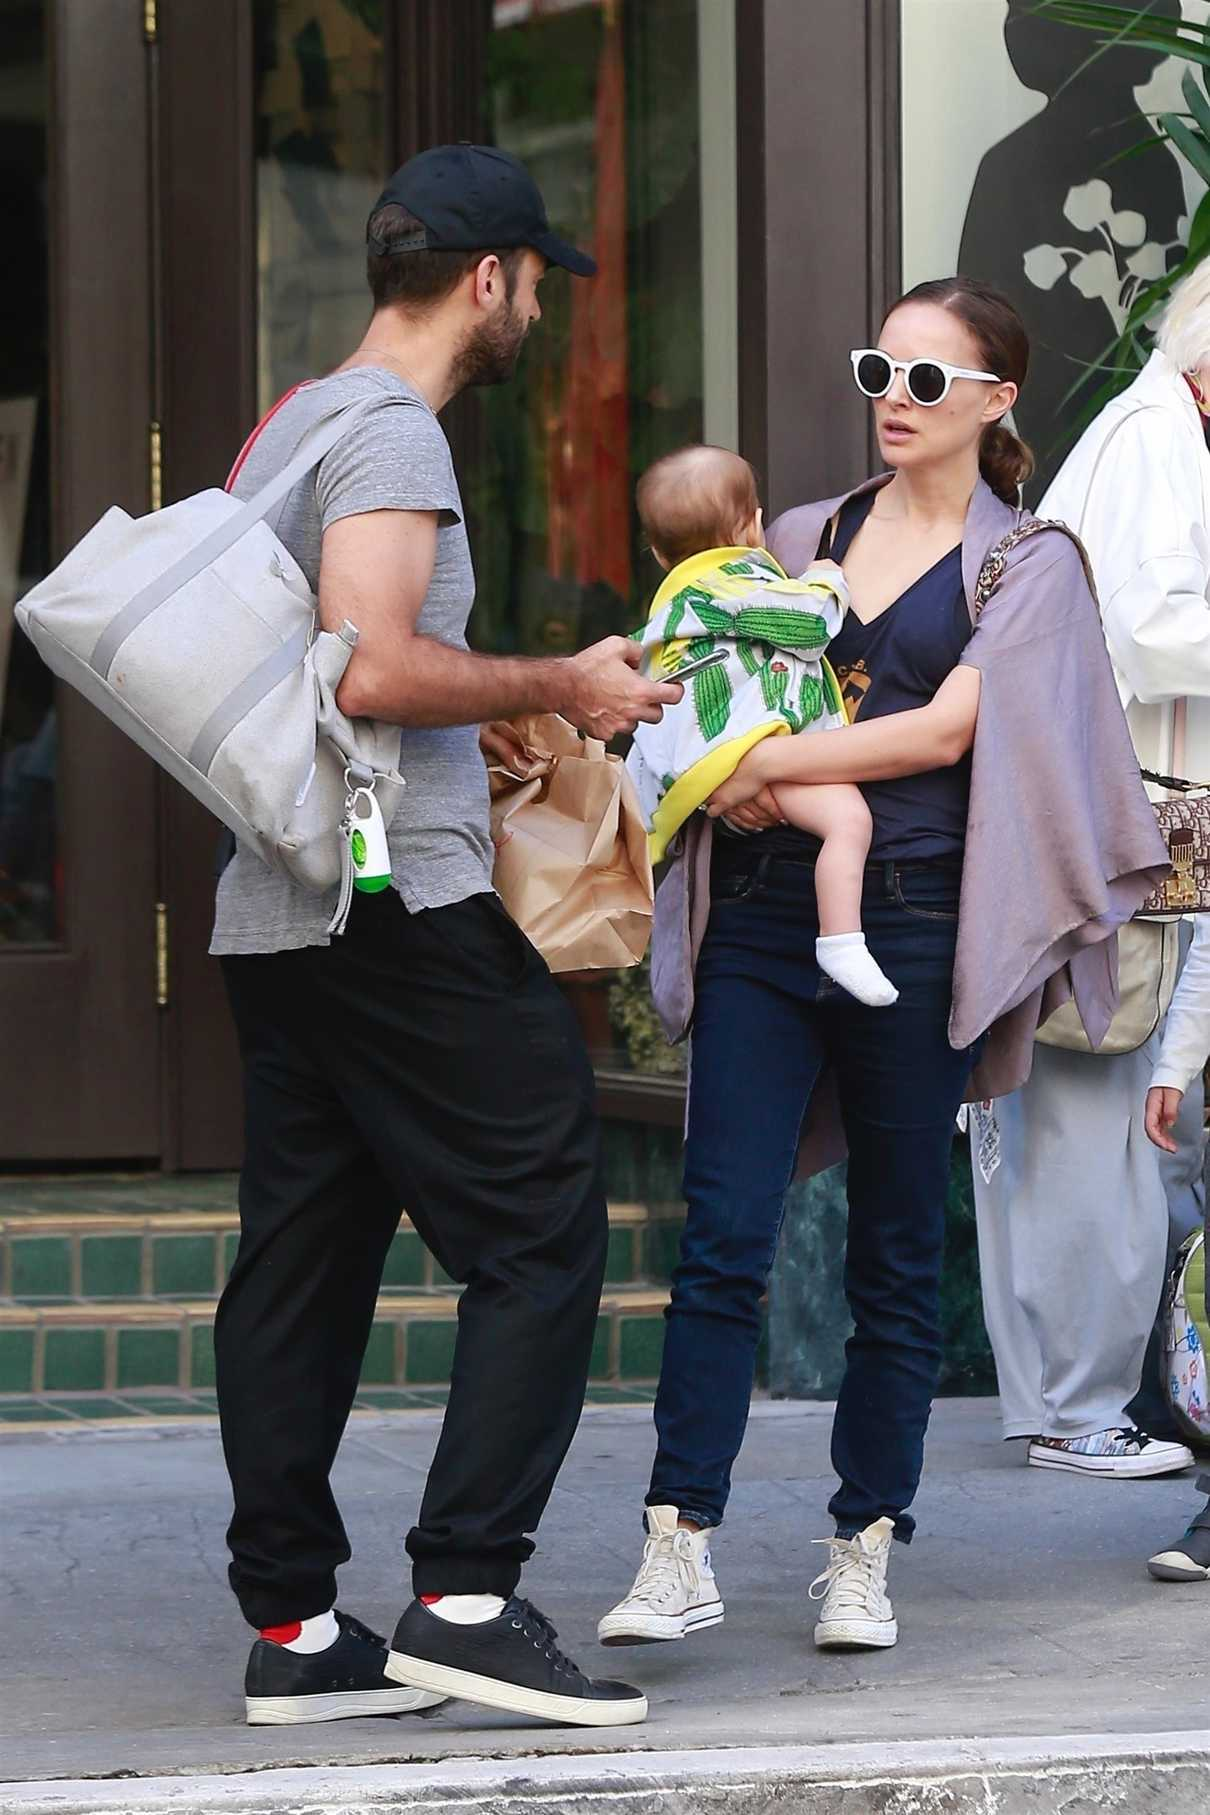 Natalie Portman Heads to Breakfast with Her Family in ... натали портман